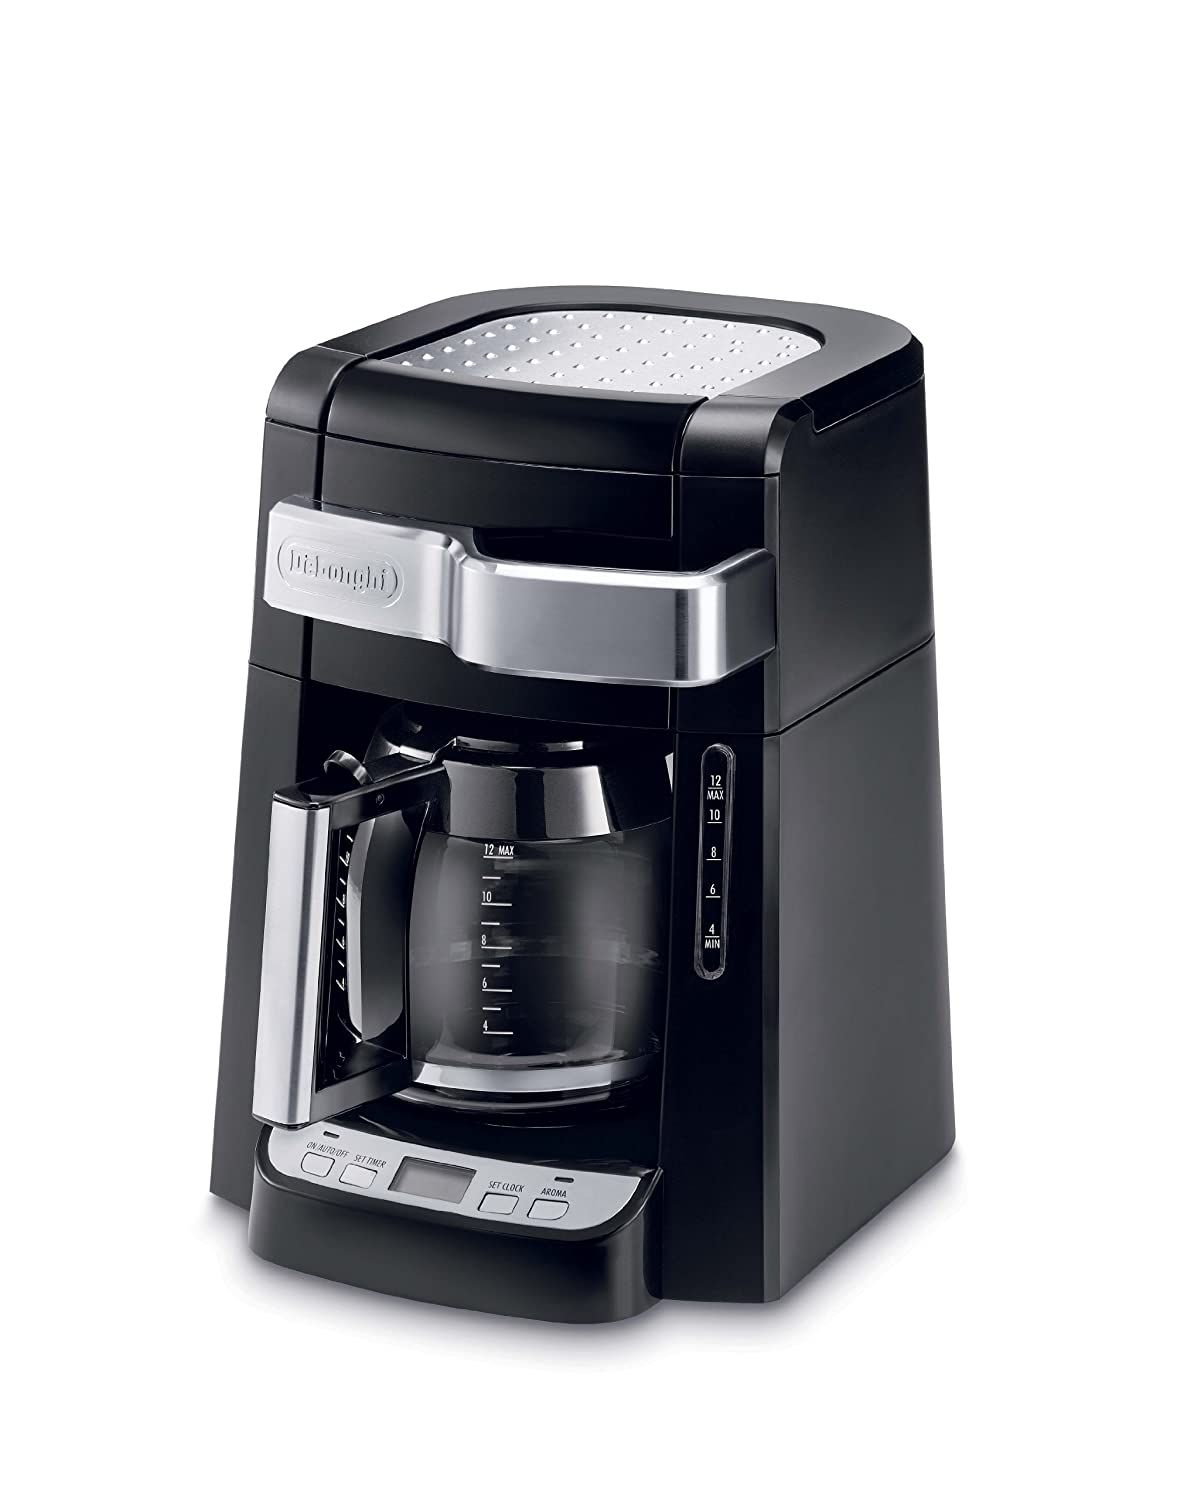 Delonghi Coffee Maker Glass Carafe : DeLonghi DCF2212T 12-Cup Glass Carafe Drip Coffee Maker, Black 44387422123 eBay